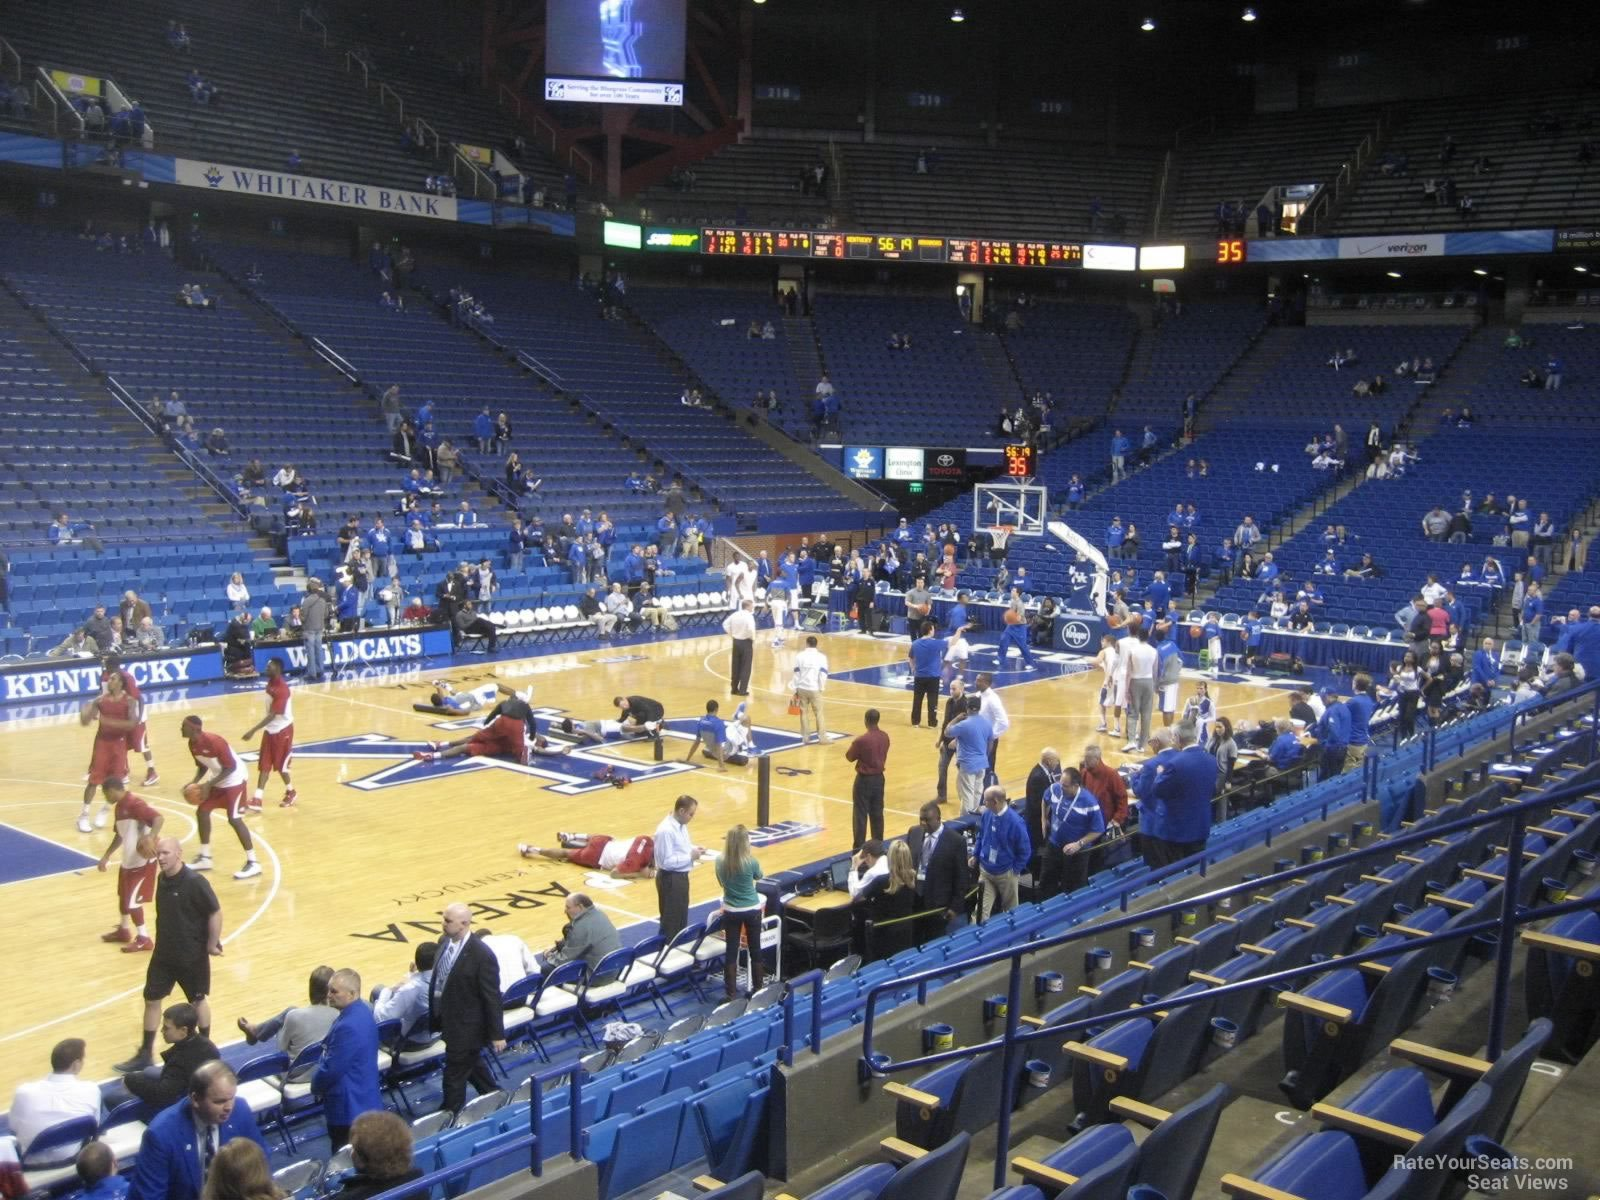 Seat View for Rupp Arena Section 33, Row F